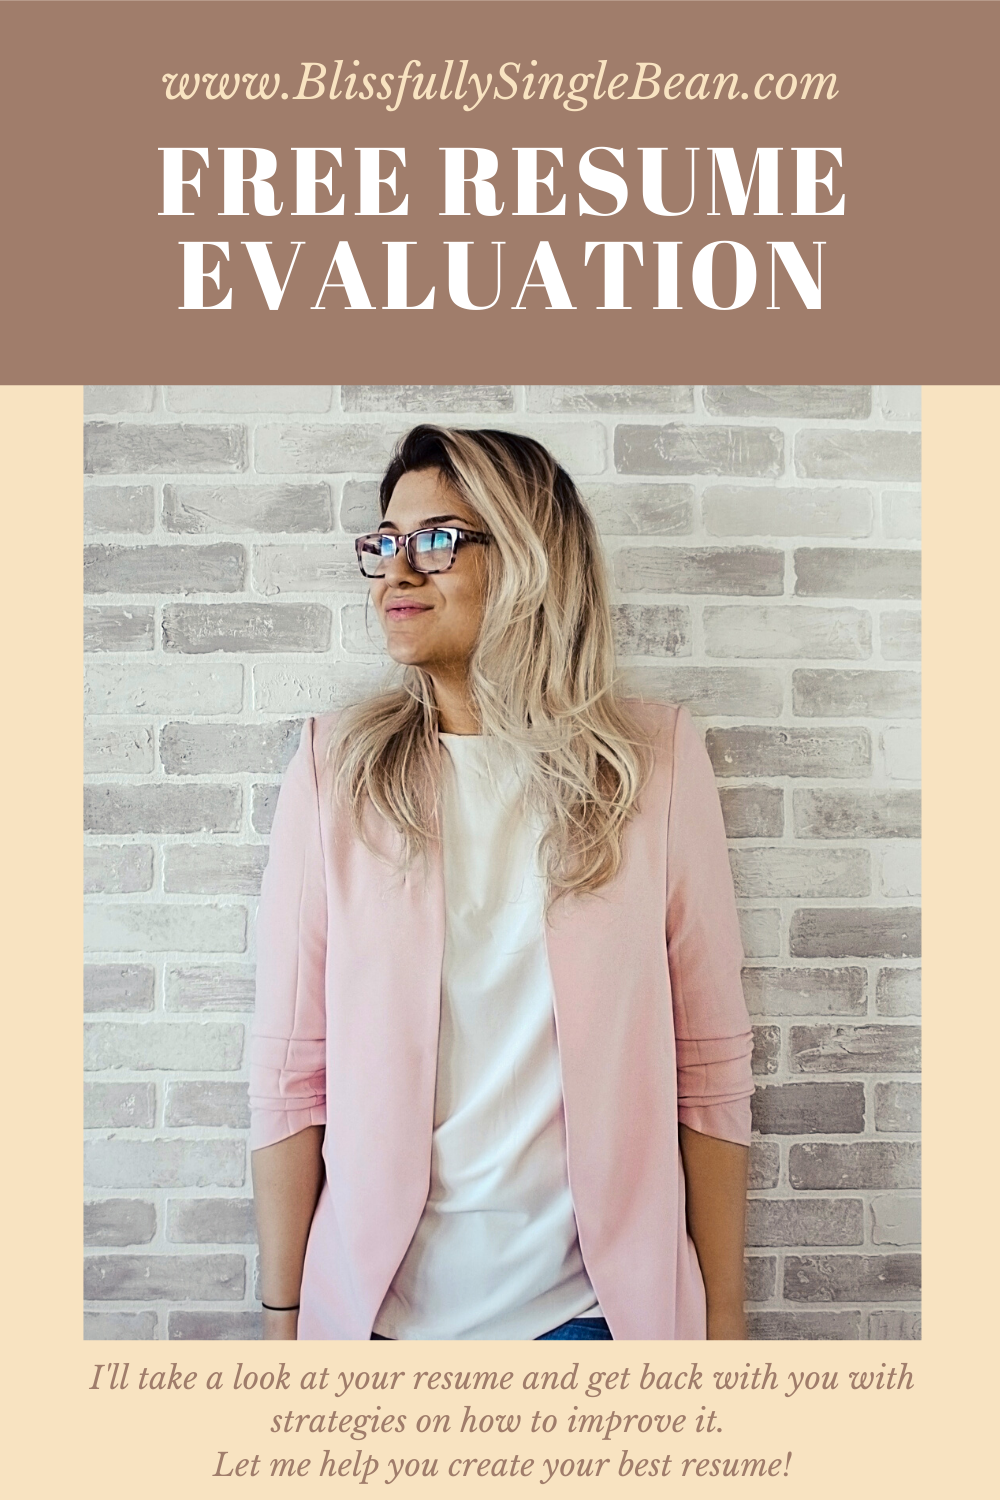 Get A Free Resume Evaluation In 2020 Resume Help Resume Objective Statement Resume Objective Examples